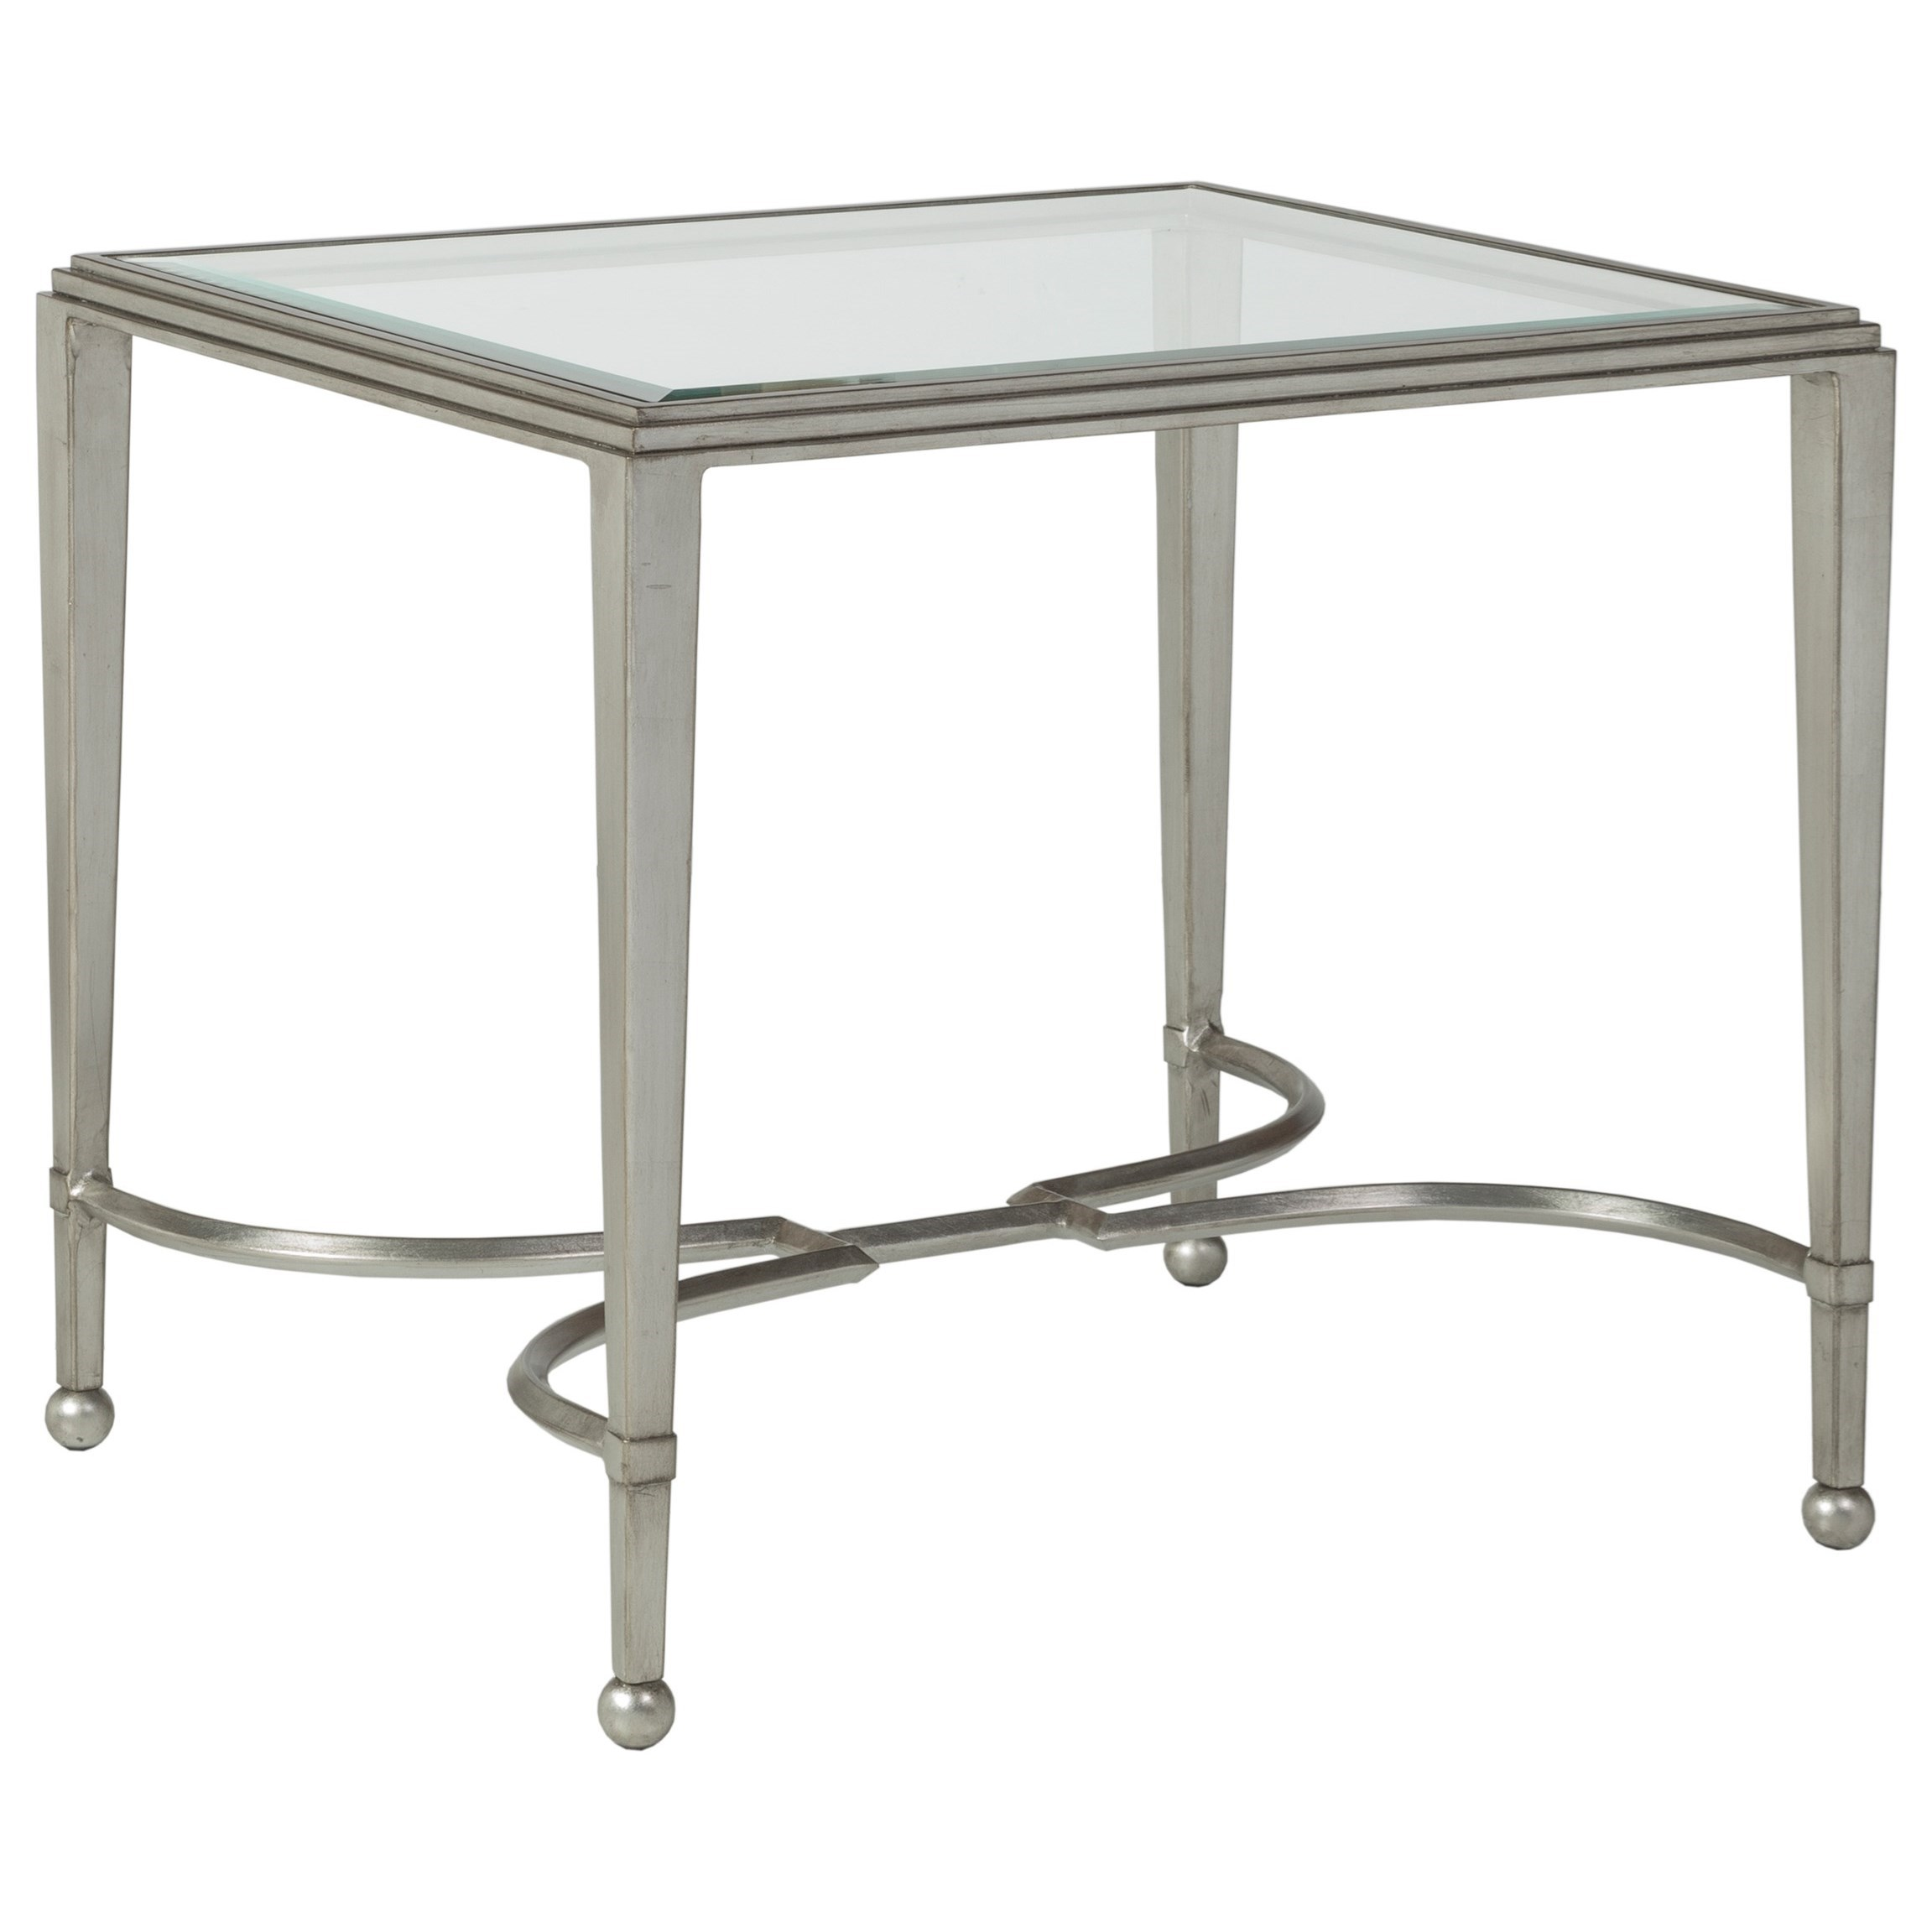 Artistica Metal Sangioves Rectangular End Table by Artistica at Baer's Furniture